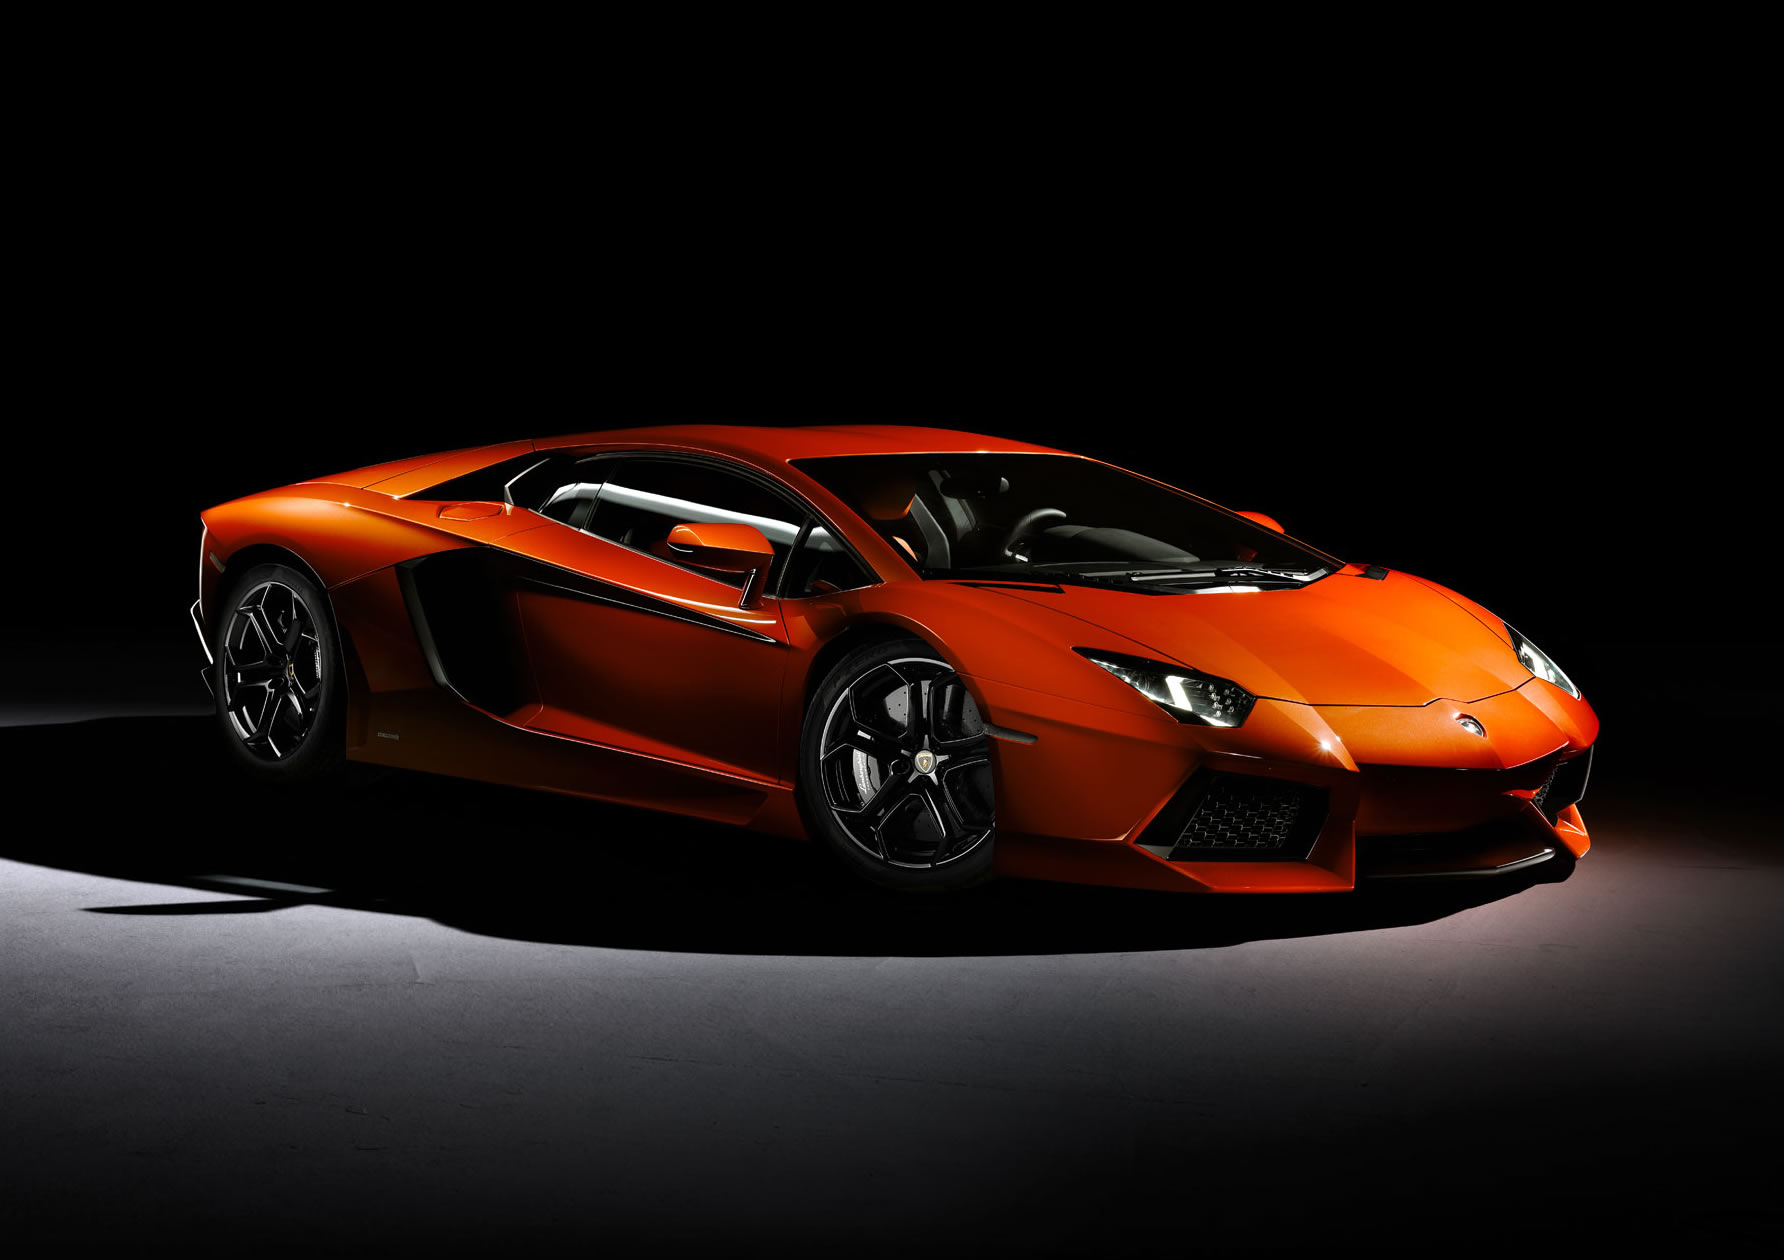 2014 Lamborghini Aventador LP 7004 Photos Specs and Review  RS